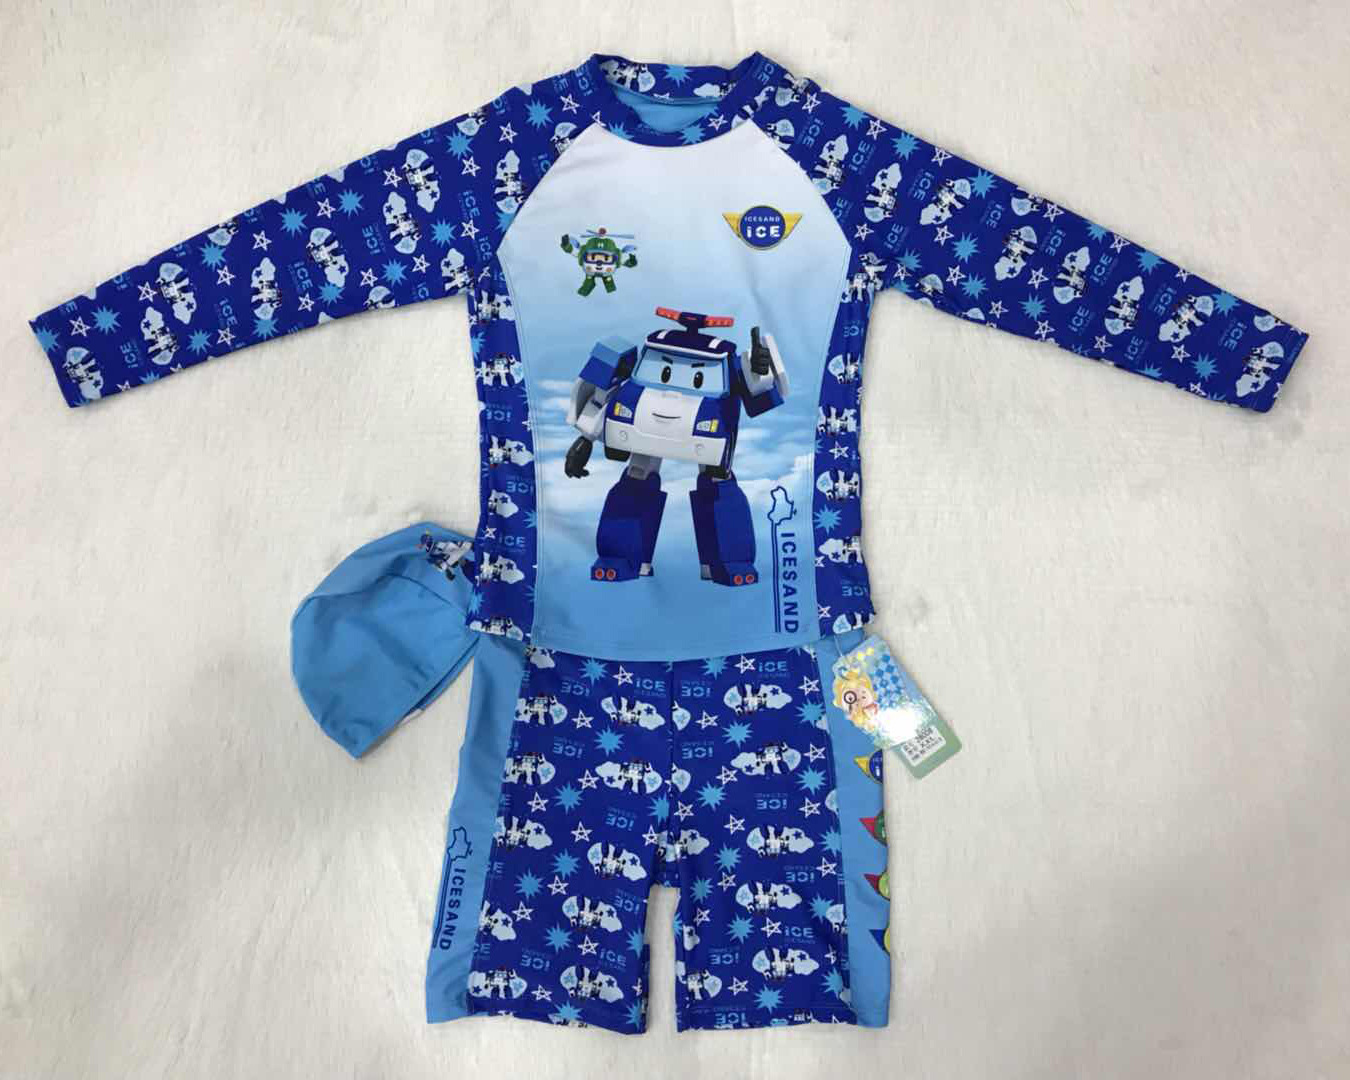 Sorbet BOY'S Swimsuit Swimming Trunks Swimming Cap-Style New Style Autobots Cartoon BOY'S Swimming Suit